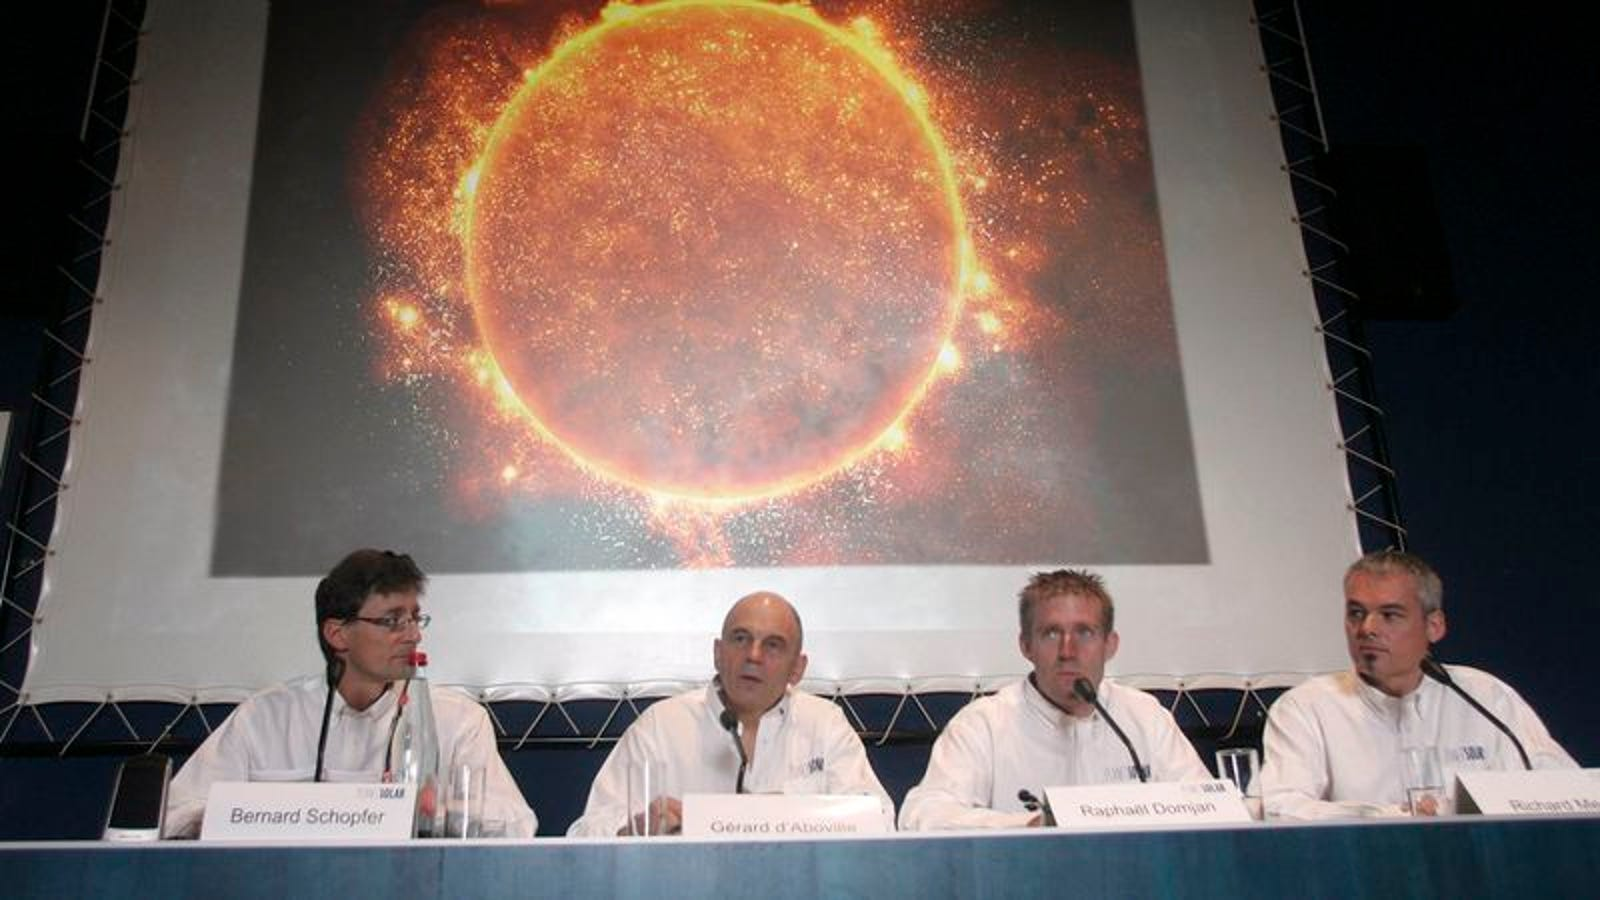 Scientists Theorize Sun Could Support Fire-Based Life